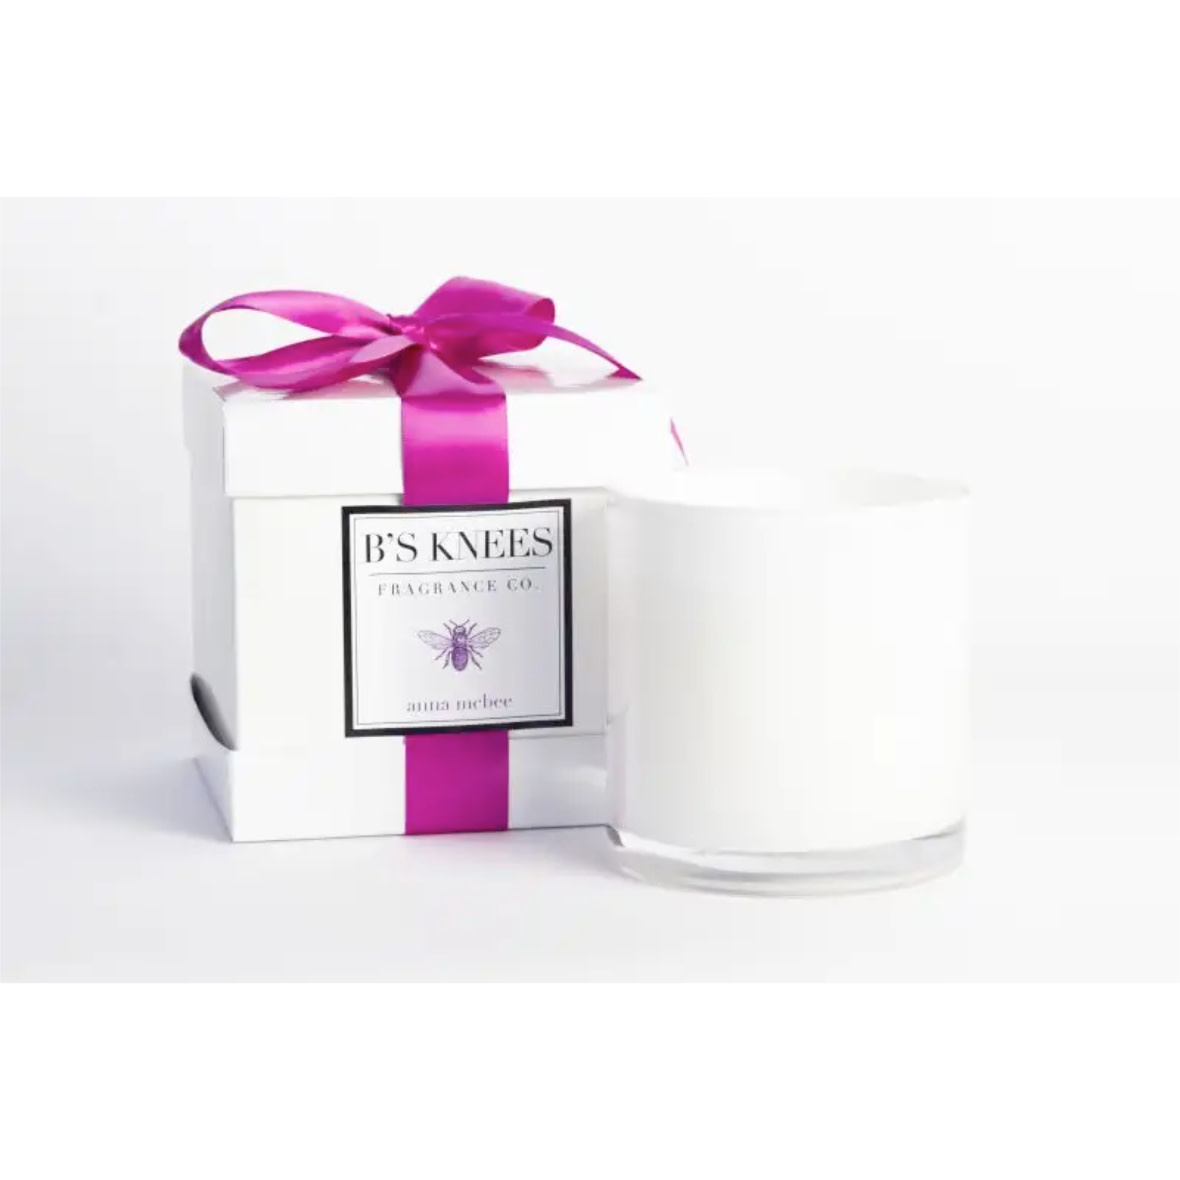 B's Knees Fragrance Co. B's Knees Anna McBee 3 Wick White Candle